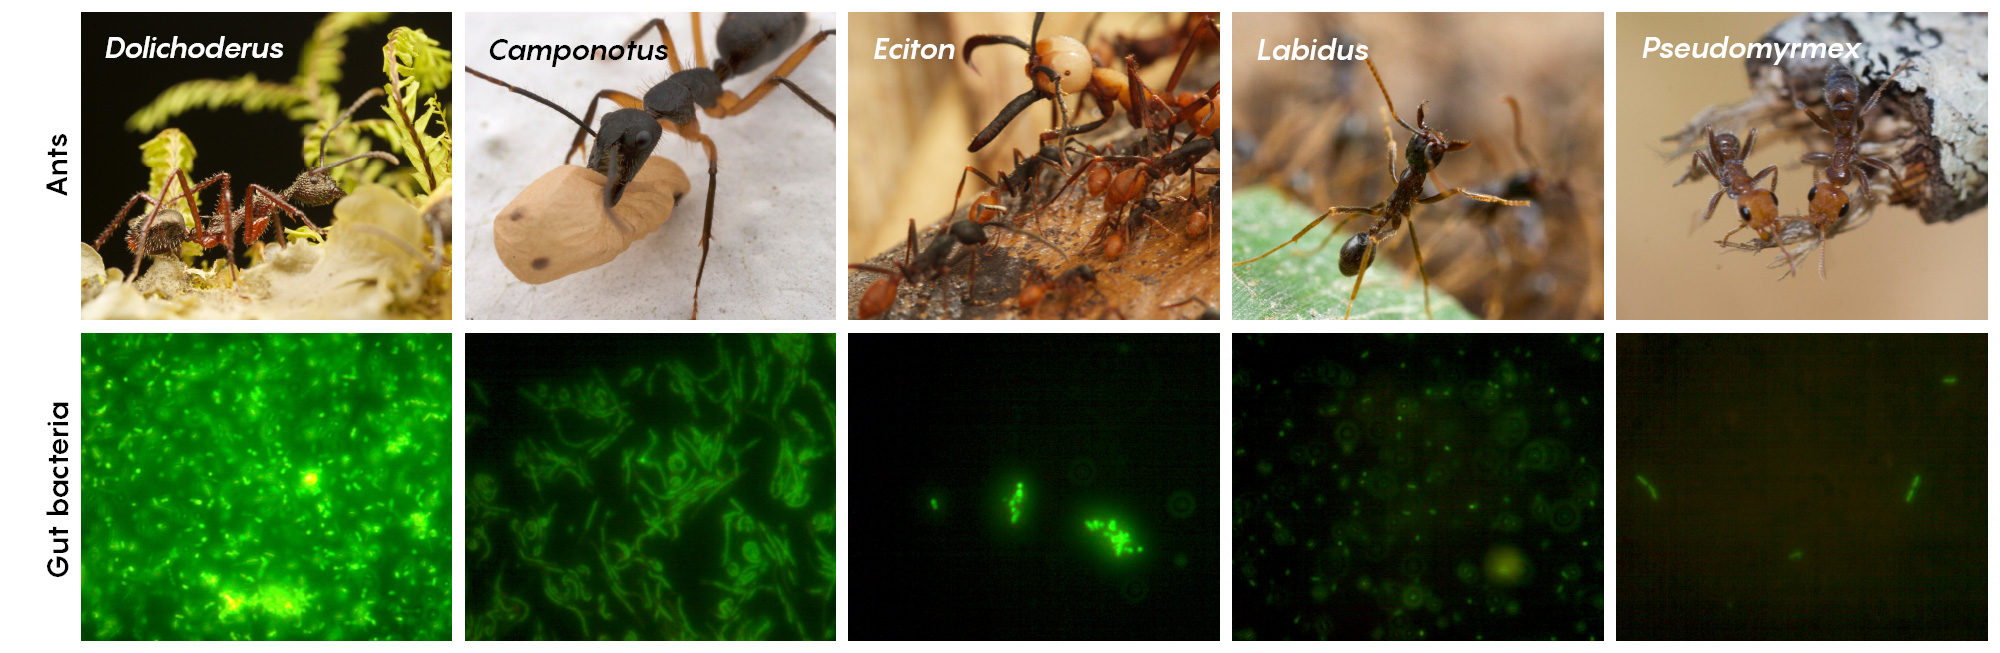 A photo montage that pairs images of ant species with fluorescent microscopy that reveals how extensive their intestinal microbiomes are.